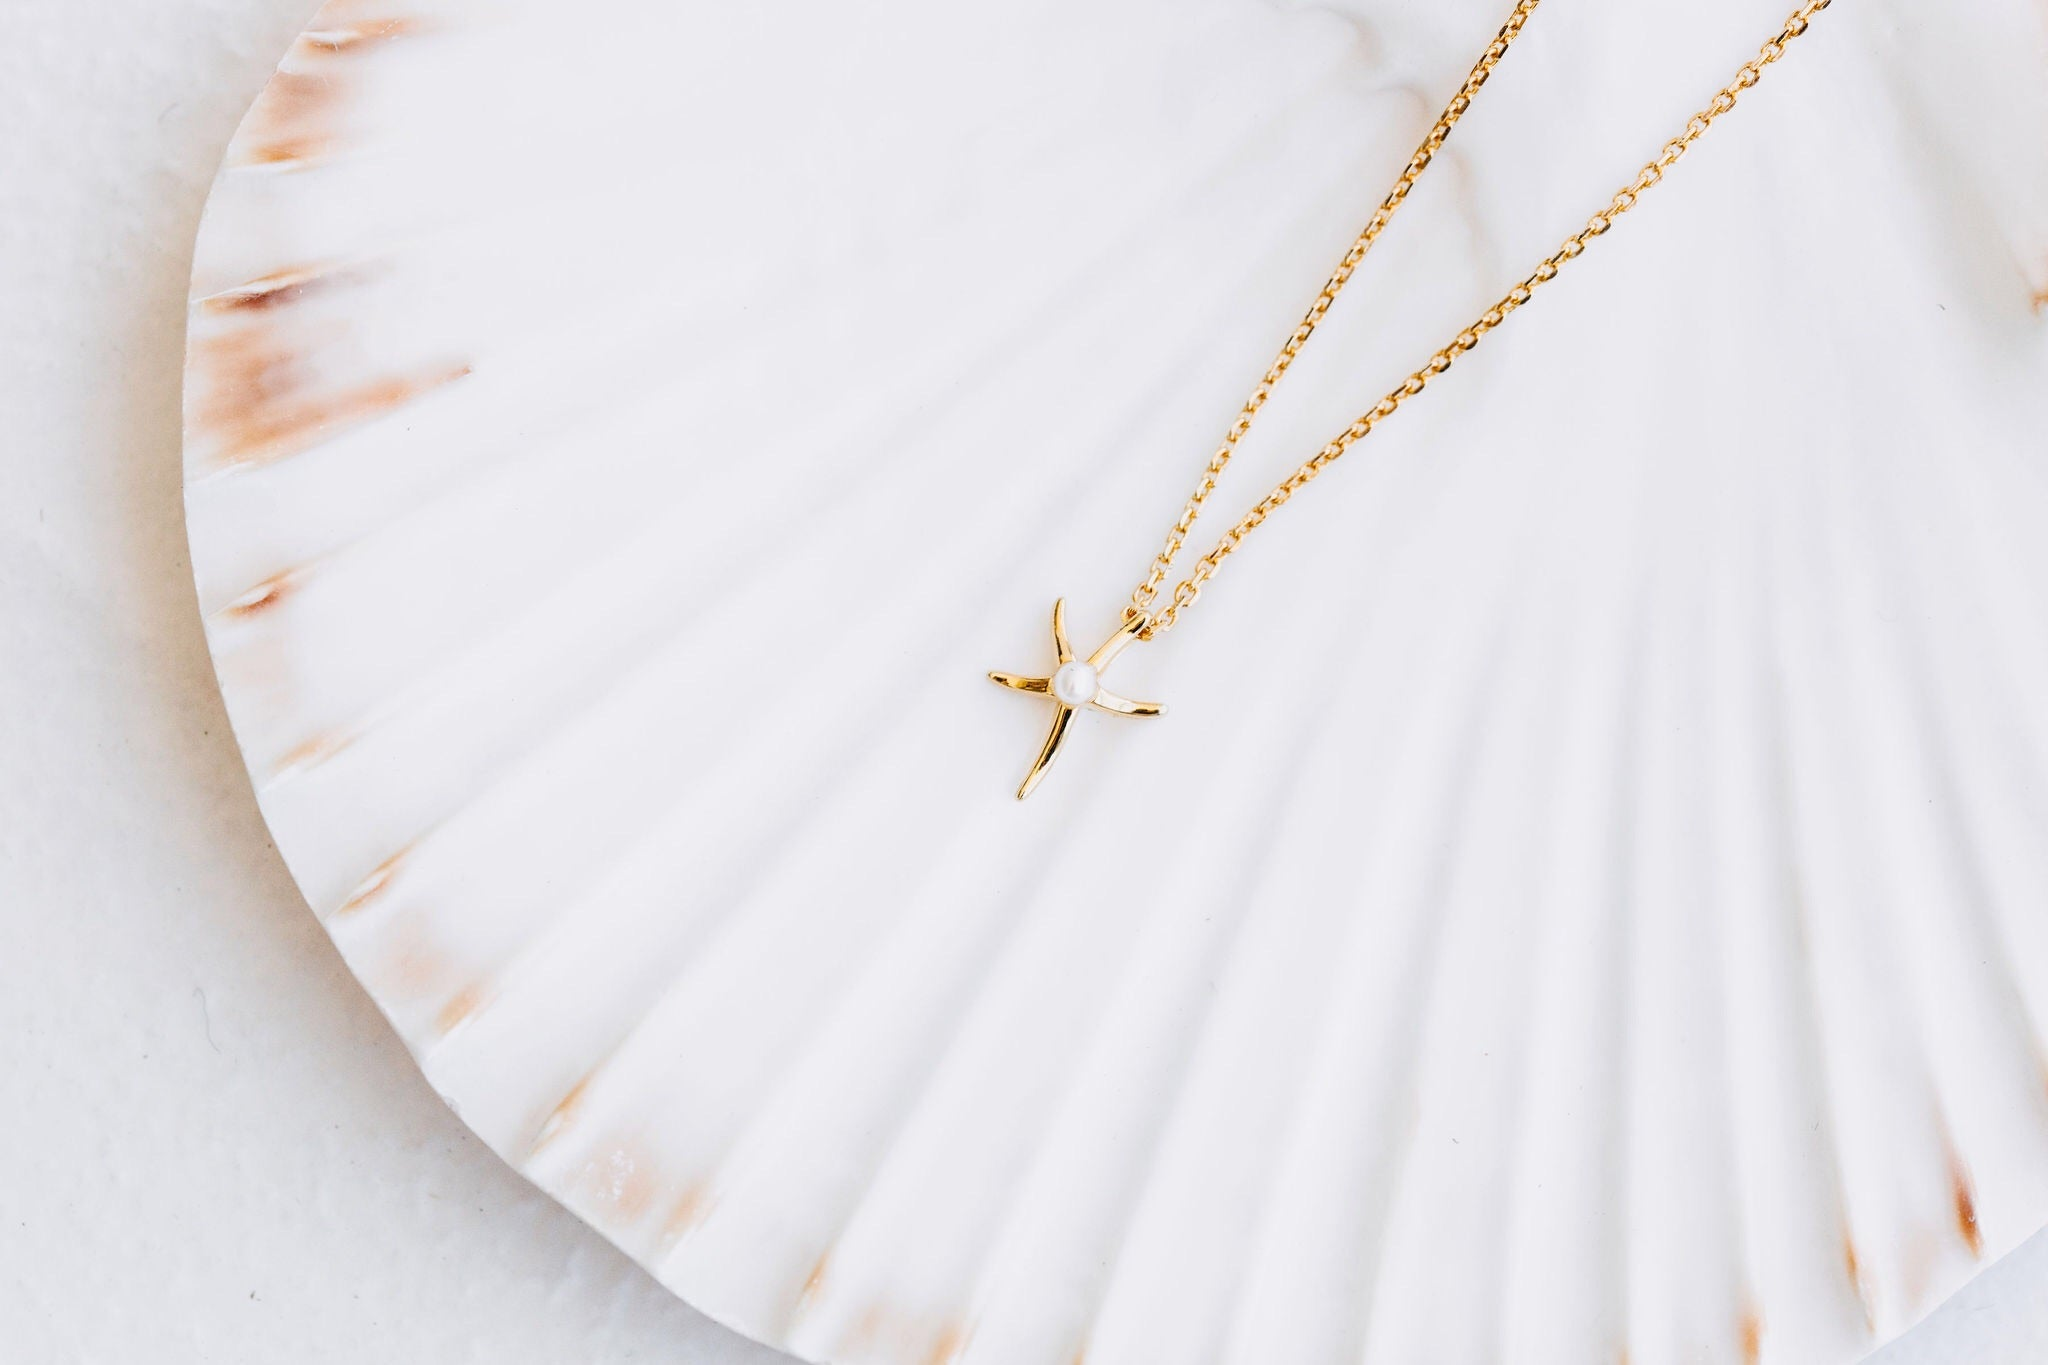 Ningaloo starfish necklace, sterling silver, yellow gold plated